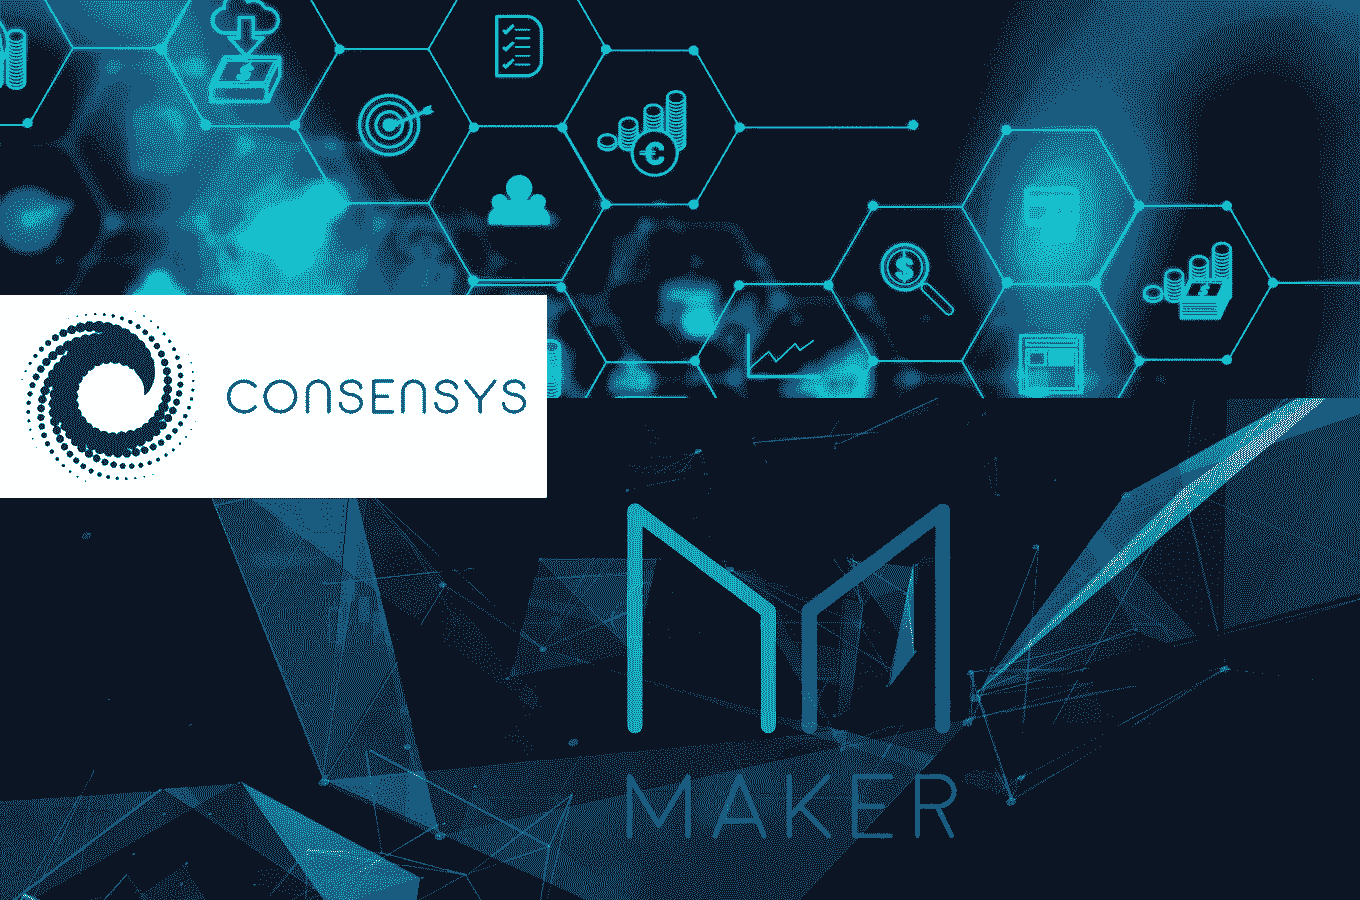 MakerDAO ConsenSys and OptiMize Encourage to Utilize Blockchain for a Better Society